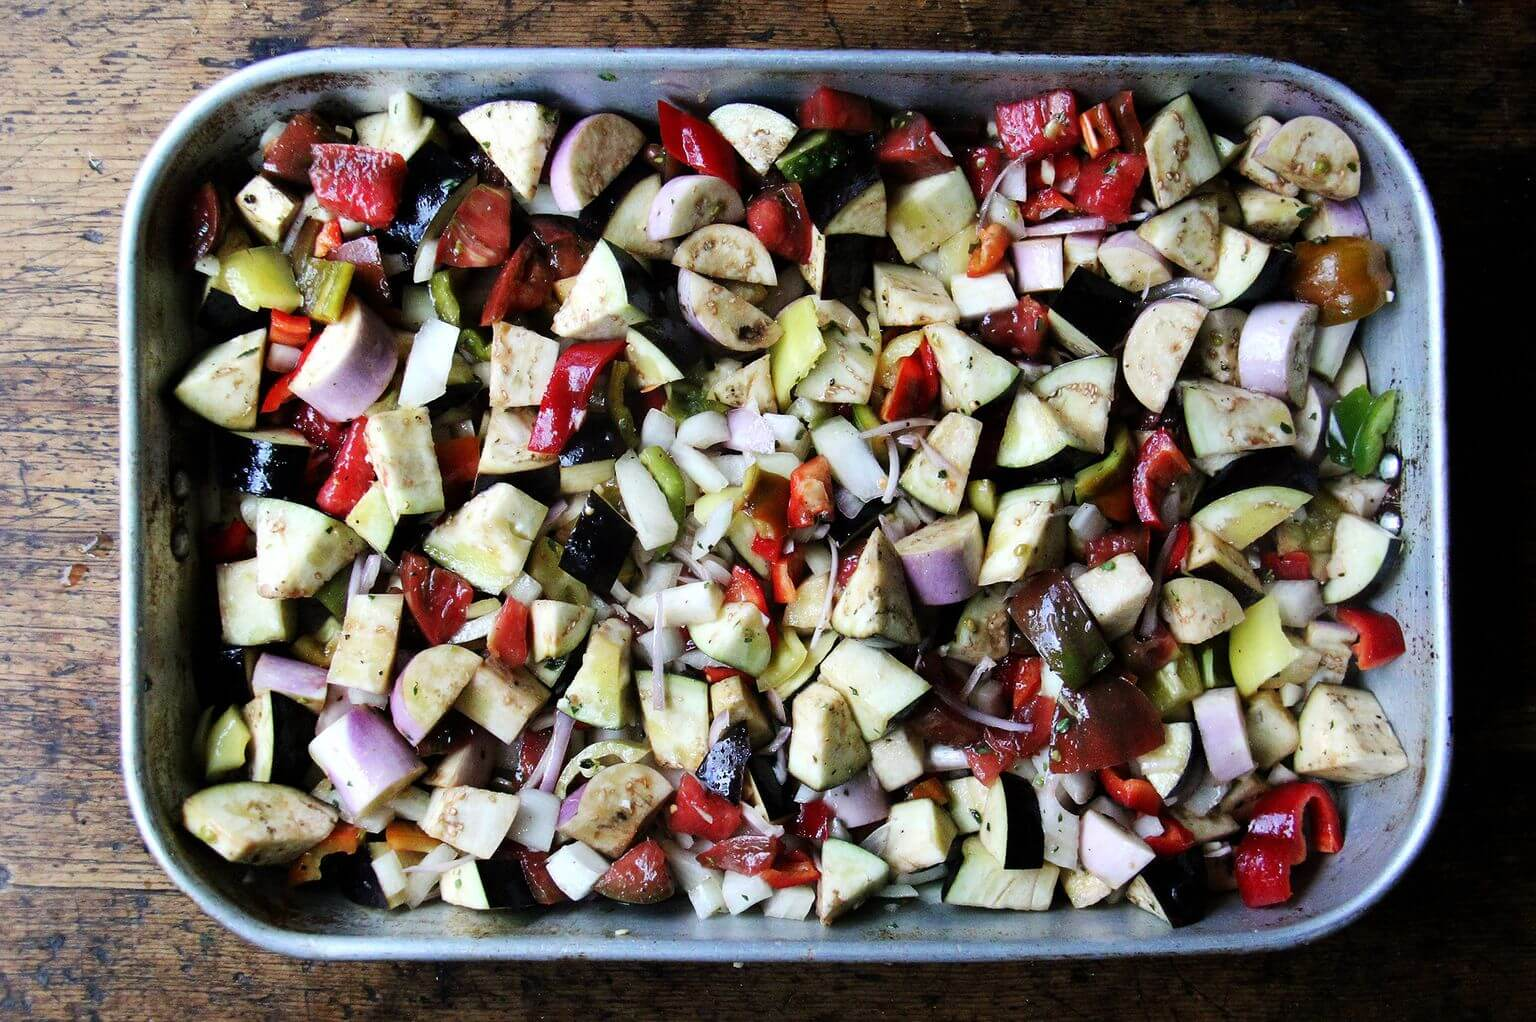 A roasting pan filled with raw, chopped vegetables.